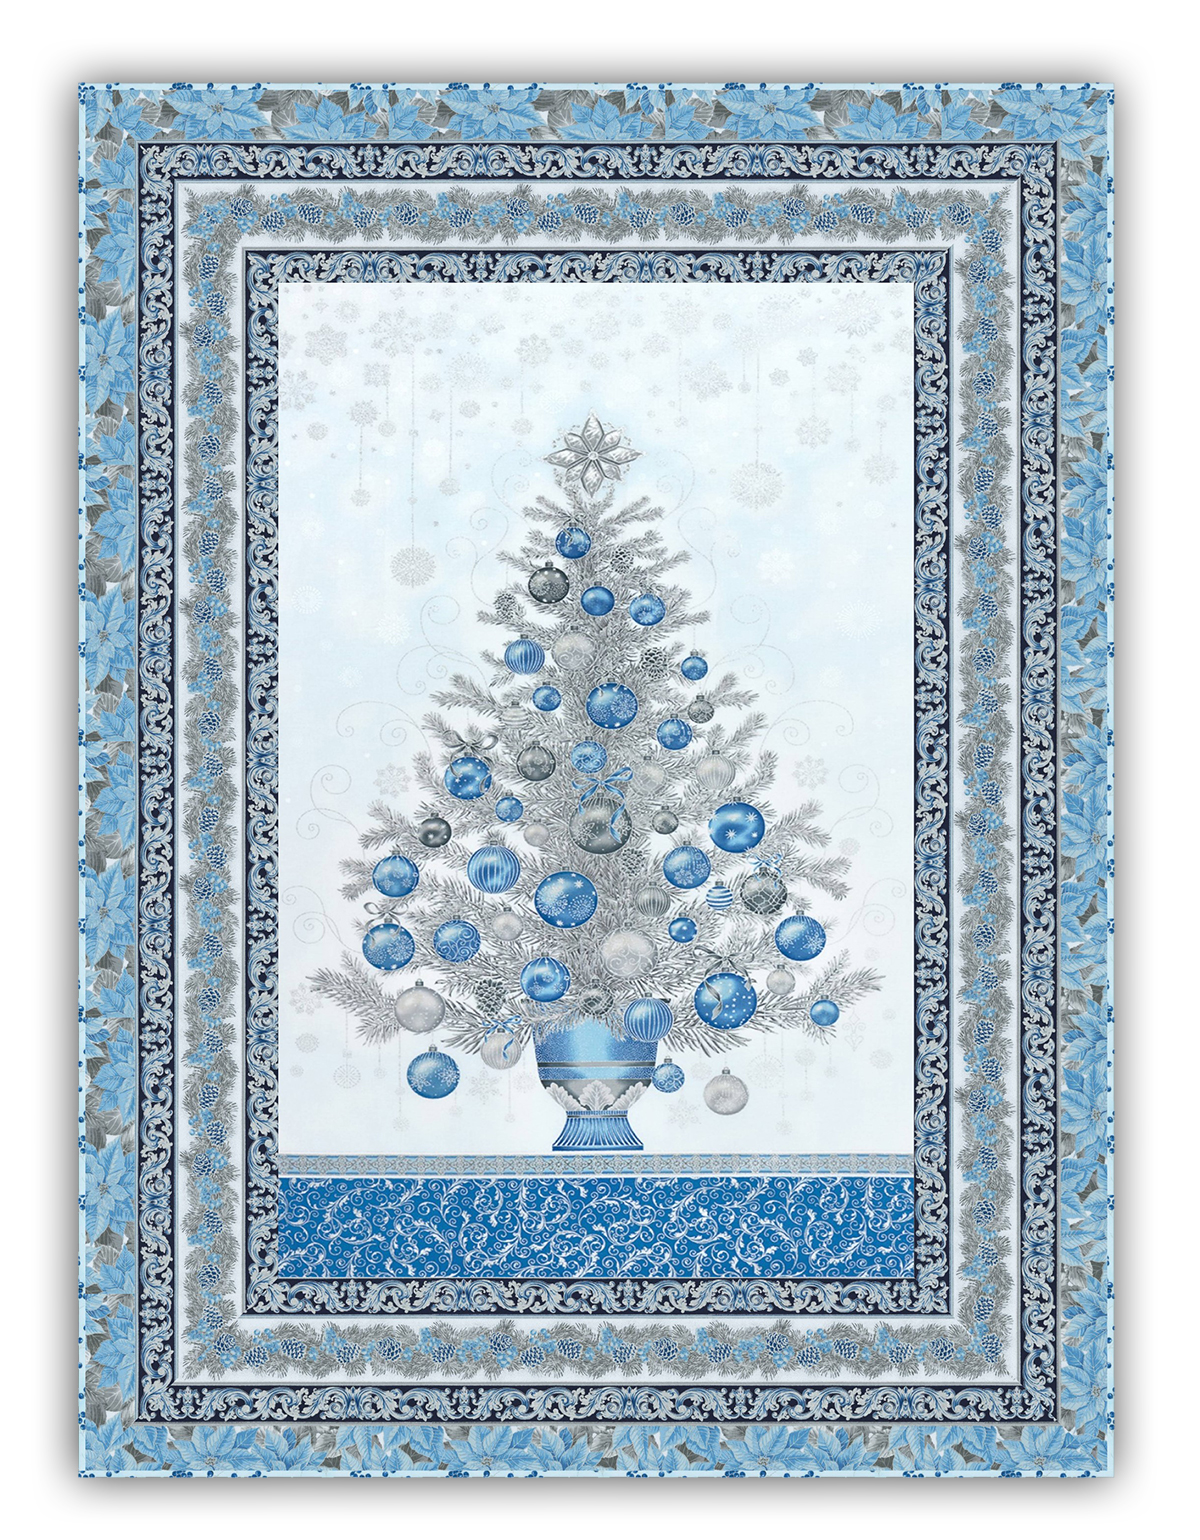 Holiday Flourish Christmas Tree Wall Hanging Quilt With Optional Deluxe Swarovski Crystal Package By Homespun Hearth Exclusive Design